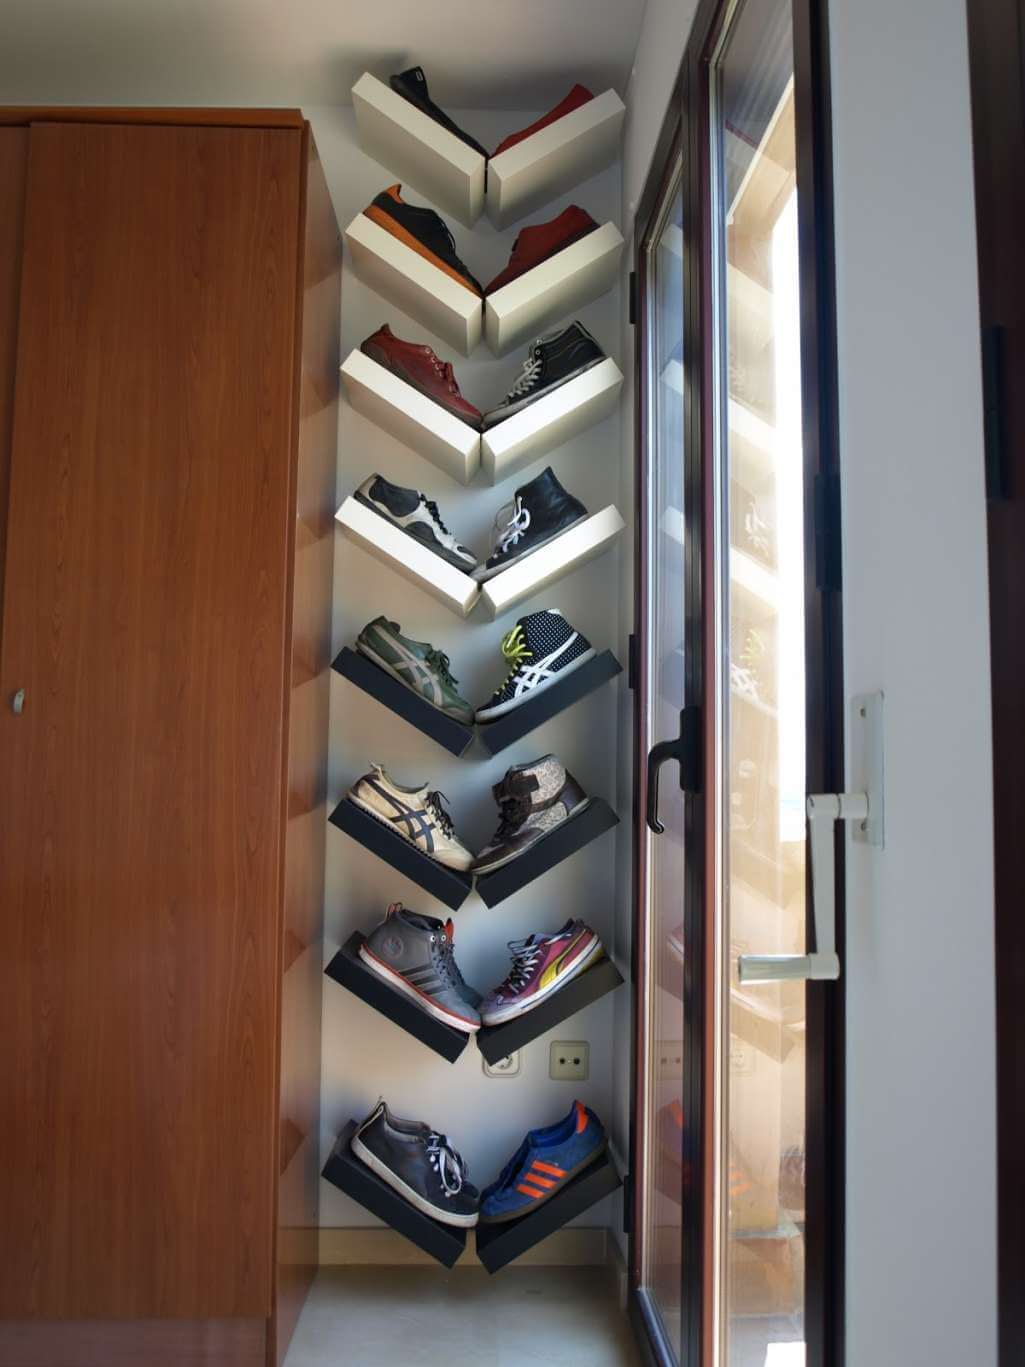 vertical shoe rack 15 Clever Narrow and Vertical Shoe Storage Ideas vertical shoe rack